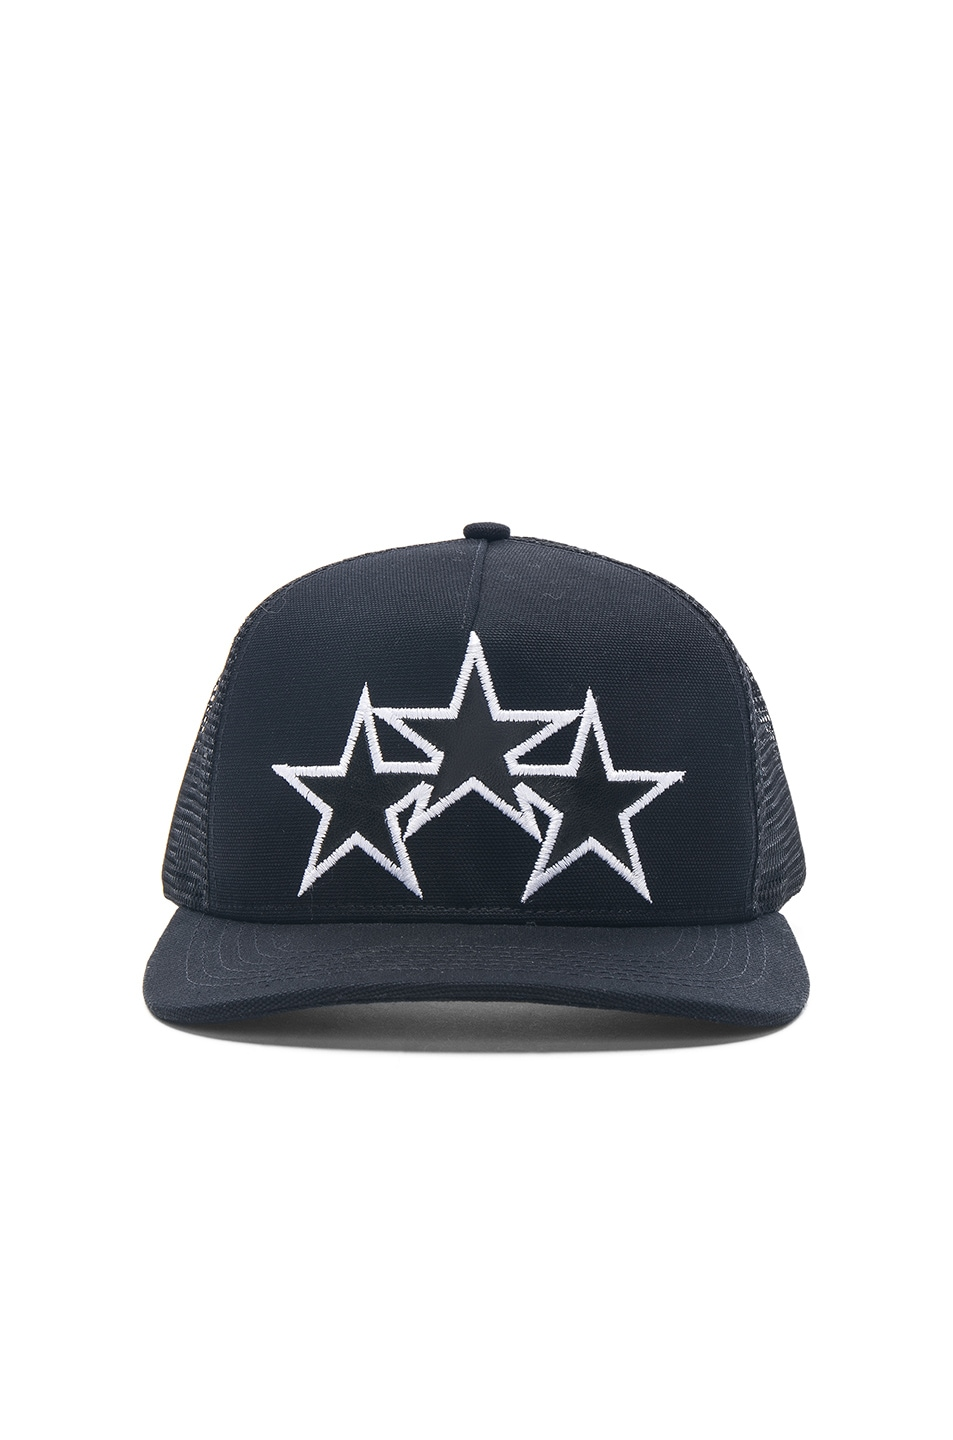 Image 1 of Amiri Star Trucker Hat in Black